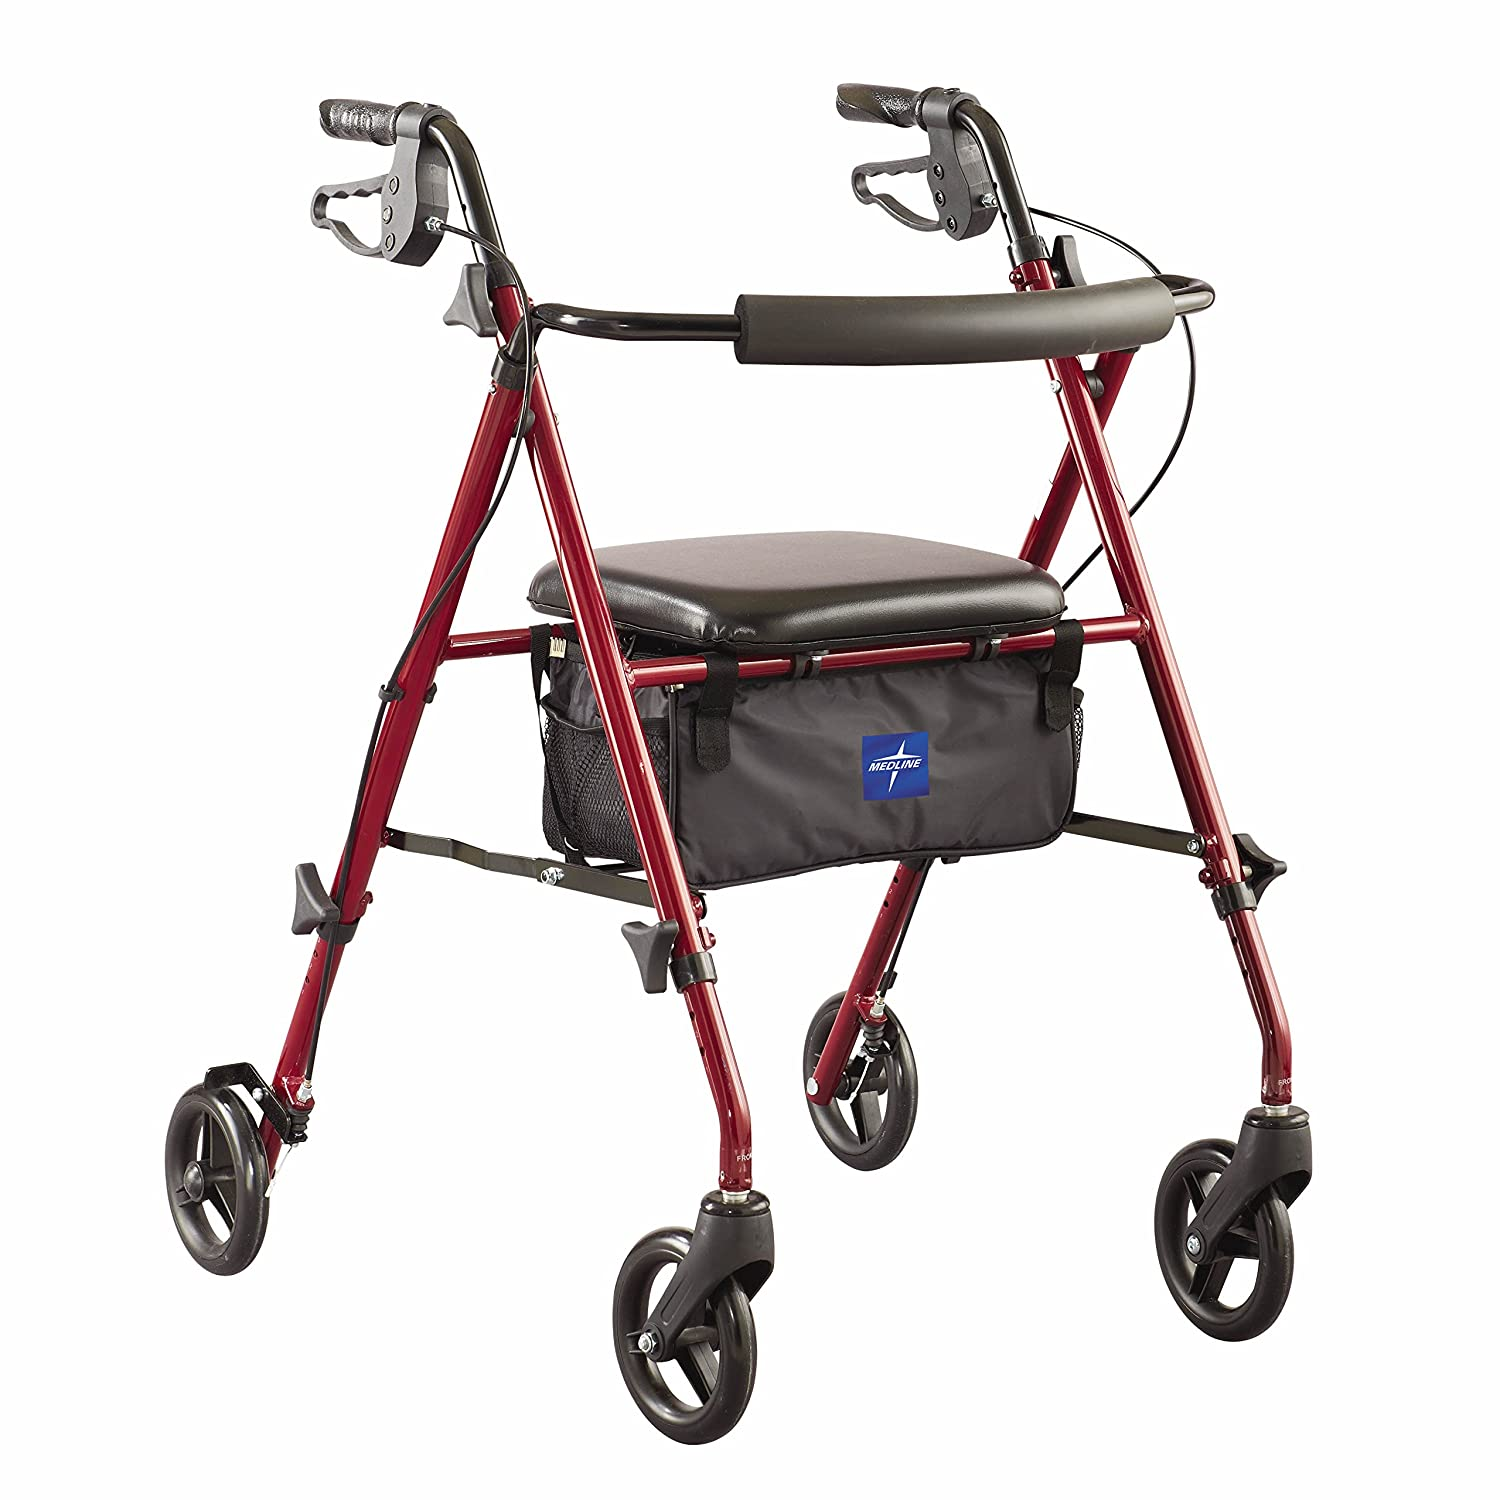 online retailer 99d1c f5469 Amazon.com  Medline Freedom Mobility Lightweight Folding Aluminum Rollator  Walker with 6-inch Wheels, Adjustable Seat and Arms, Burgundy  Health    Personal ...